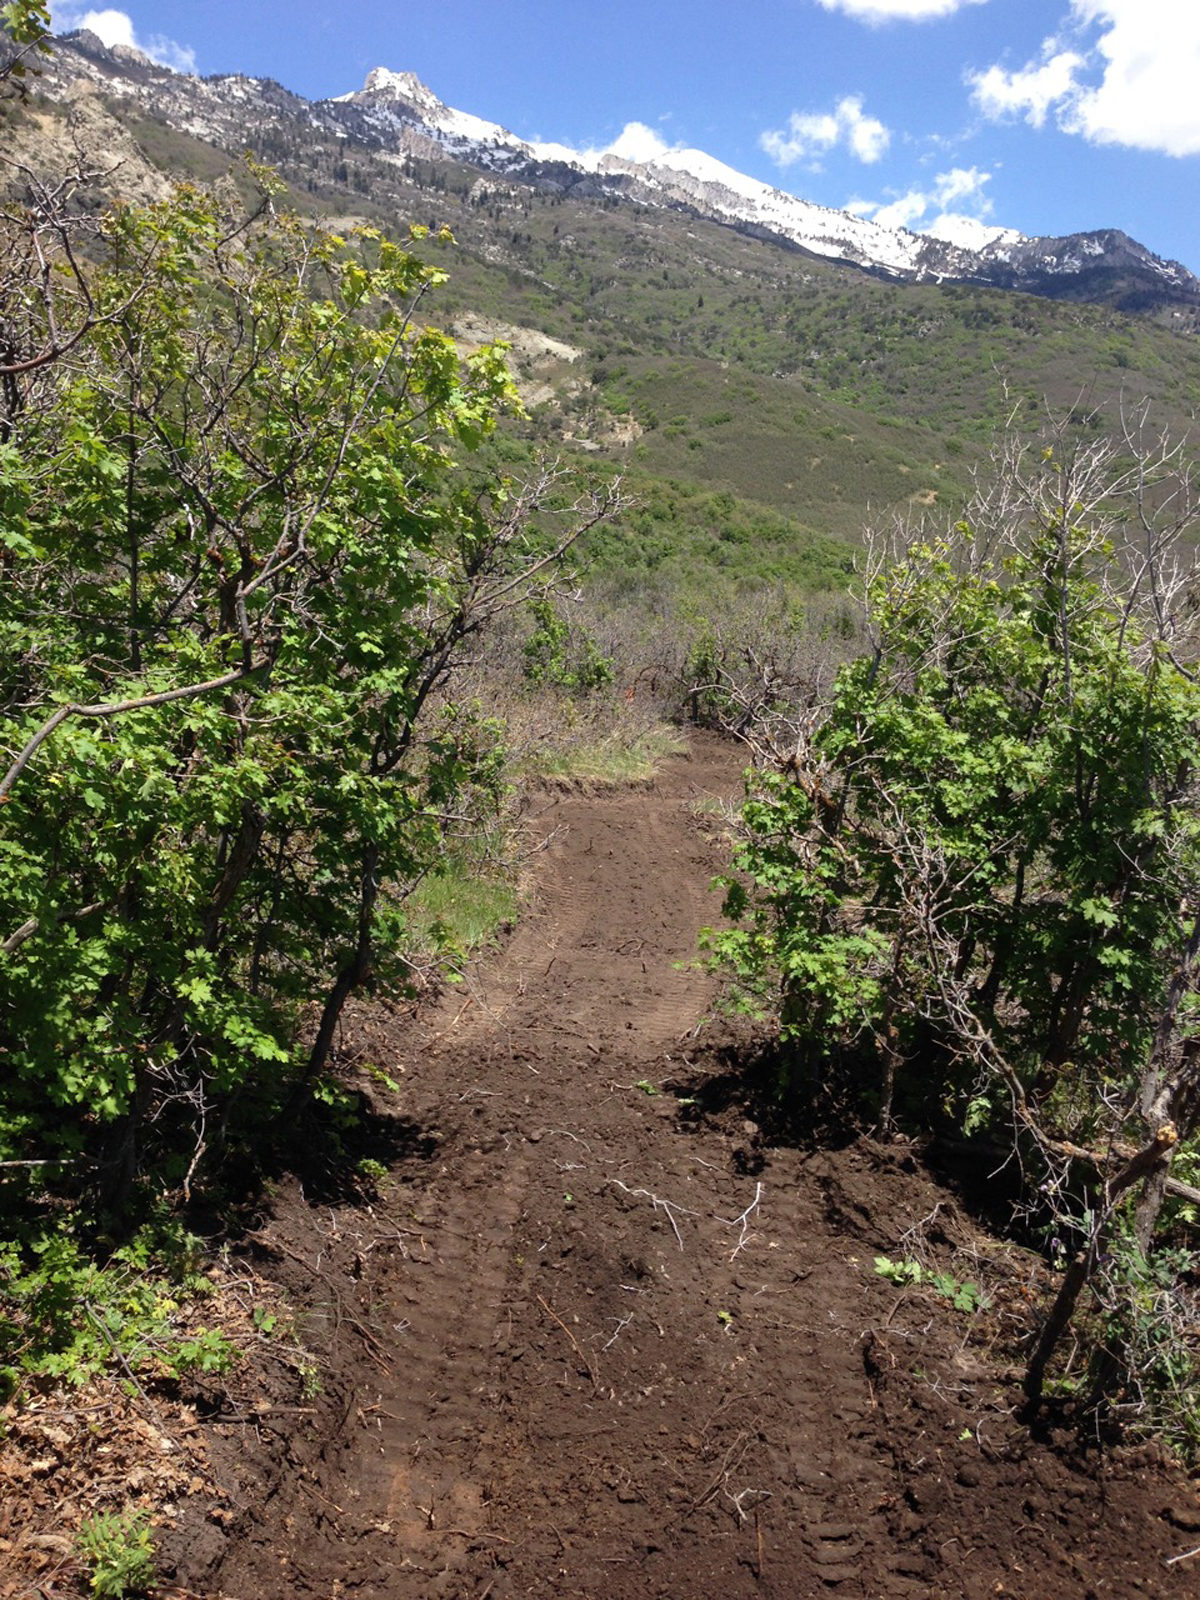 Heading east on the Three Falls Trail during construction. The trail enters a meadow with views of Lone Peak. Photo by Don West